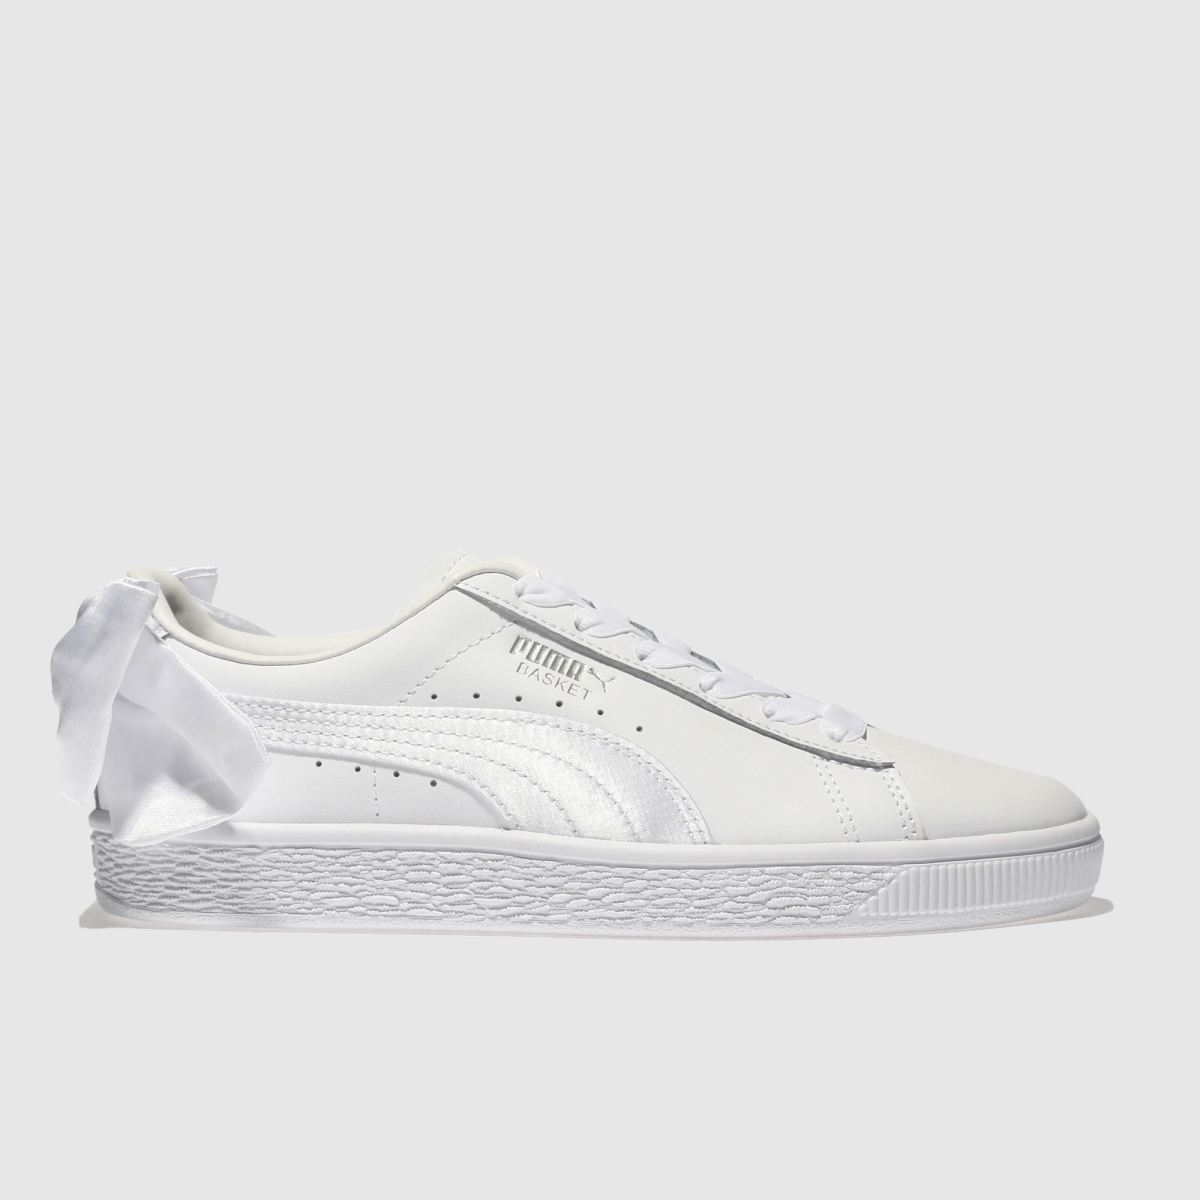 Puma White Basket Bow Girls Youth Trainers